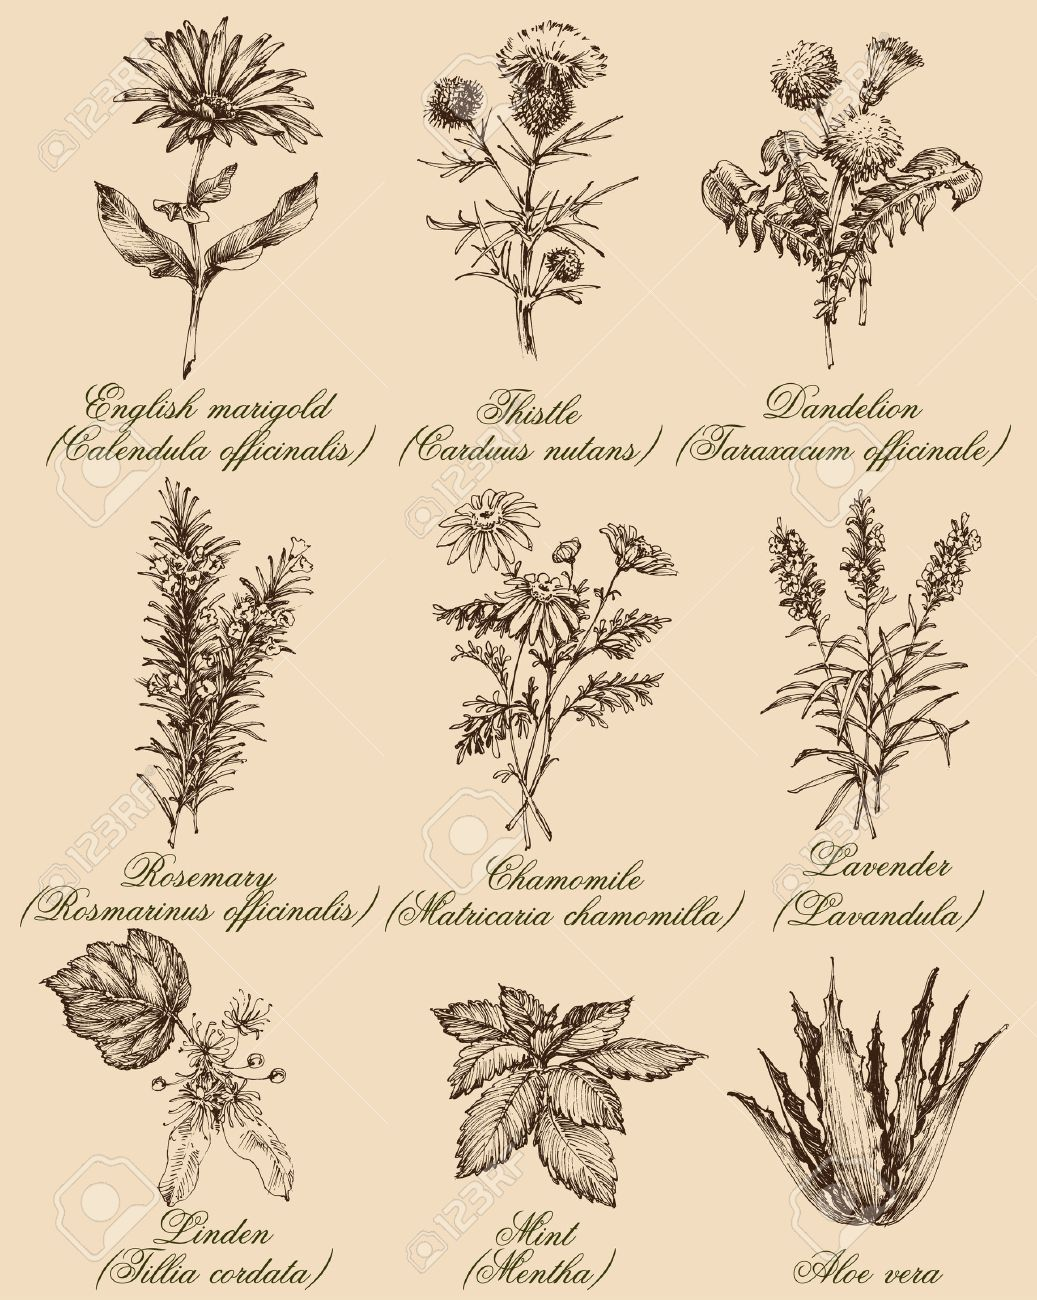 Flowers and herbs set. Medicinal plants and spices hand drawn, vintage engraving style. Botanical set for healthy living - 61110263